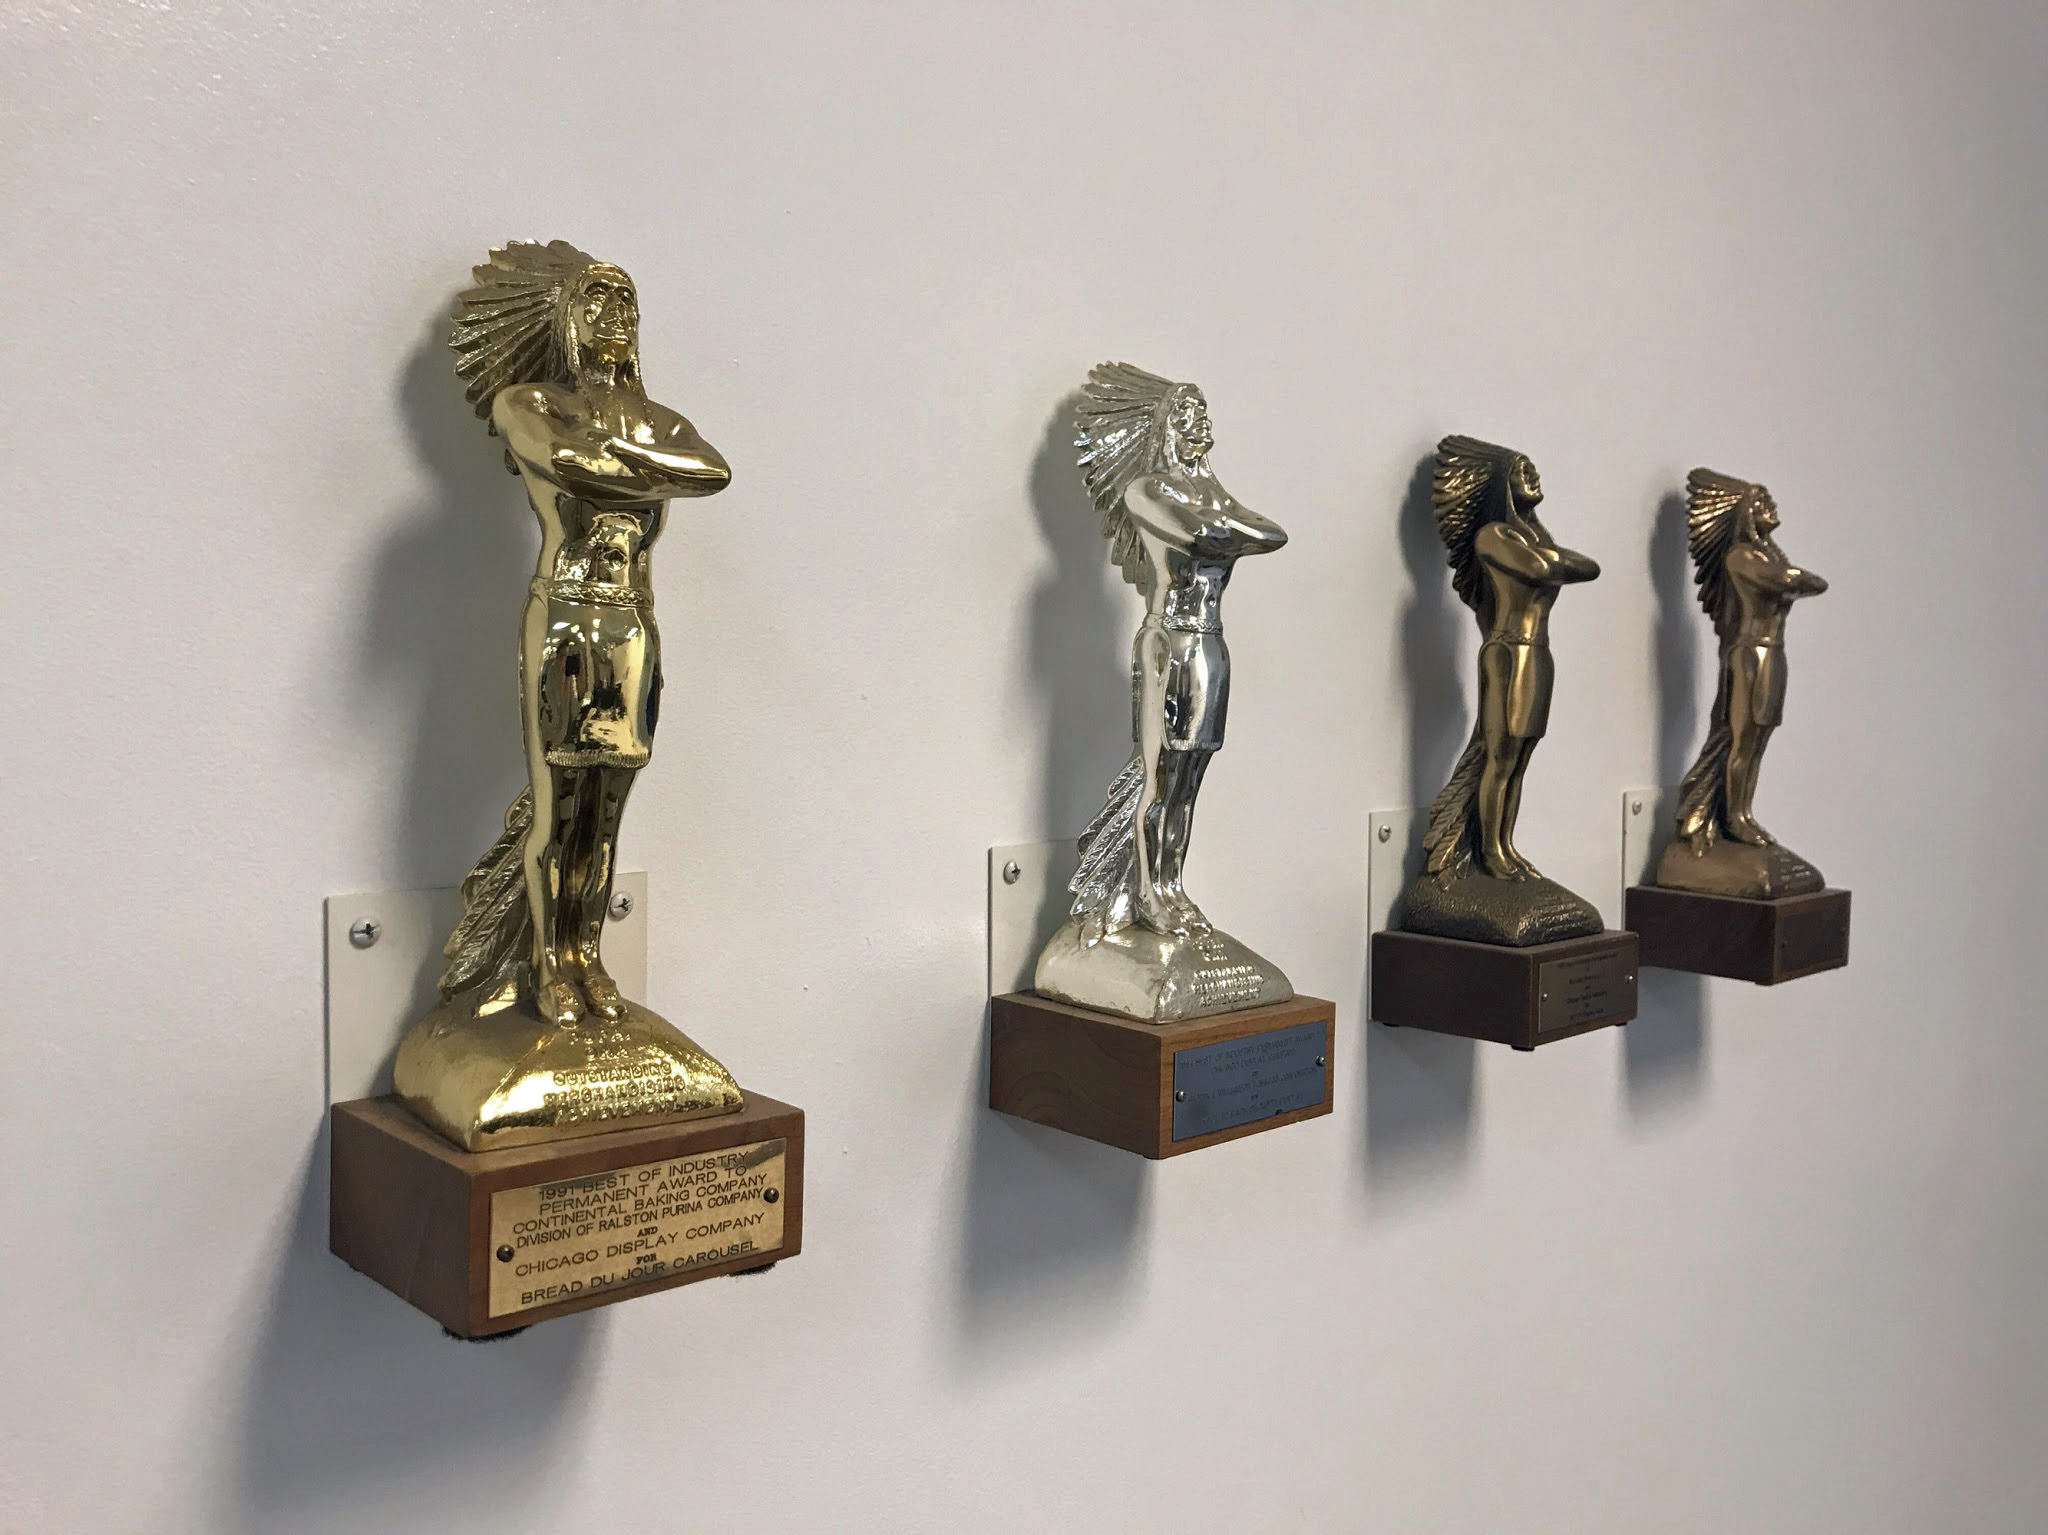 Trophies and award manufacturing and production services for companies and organizations